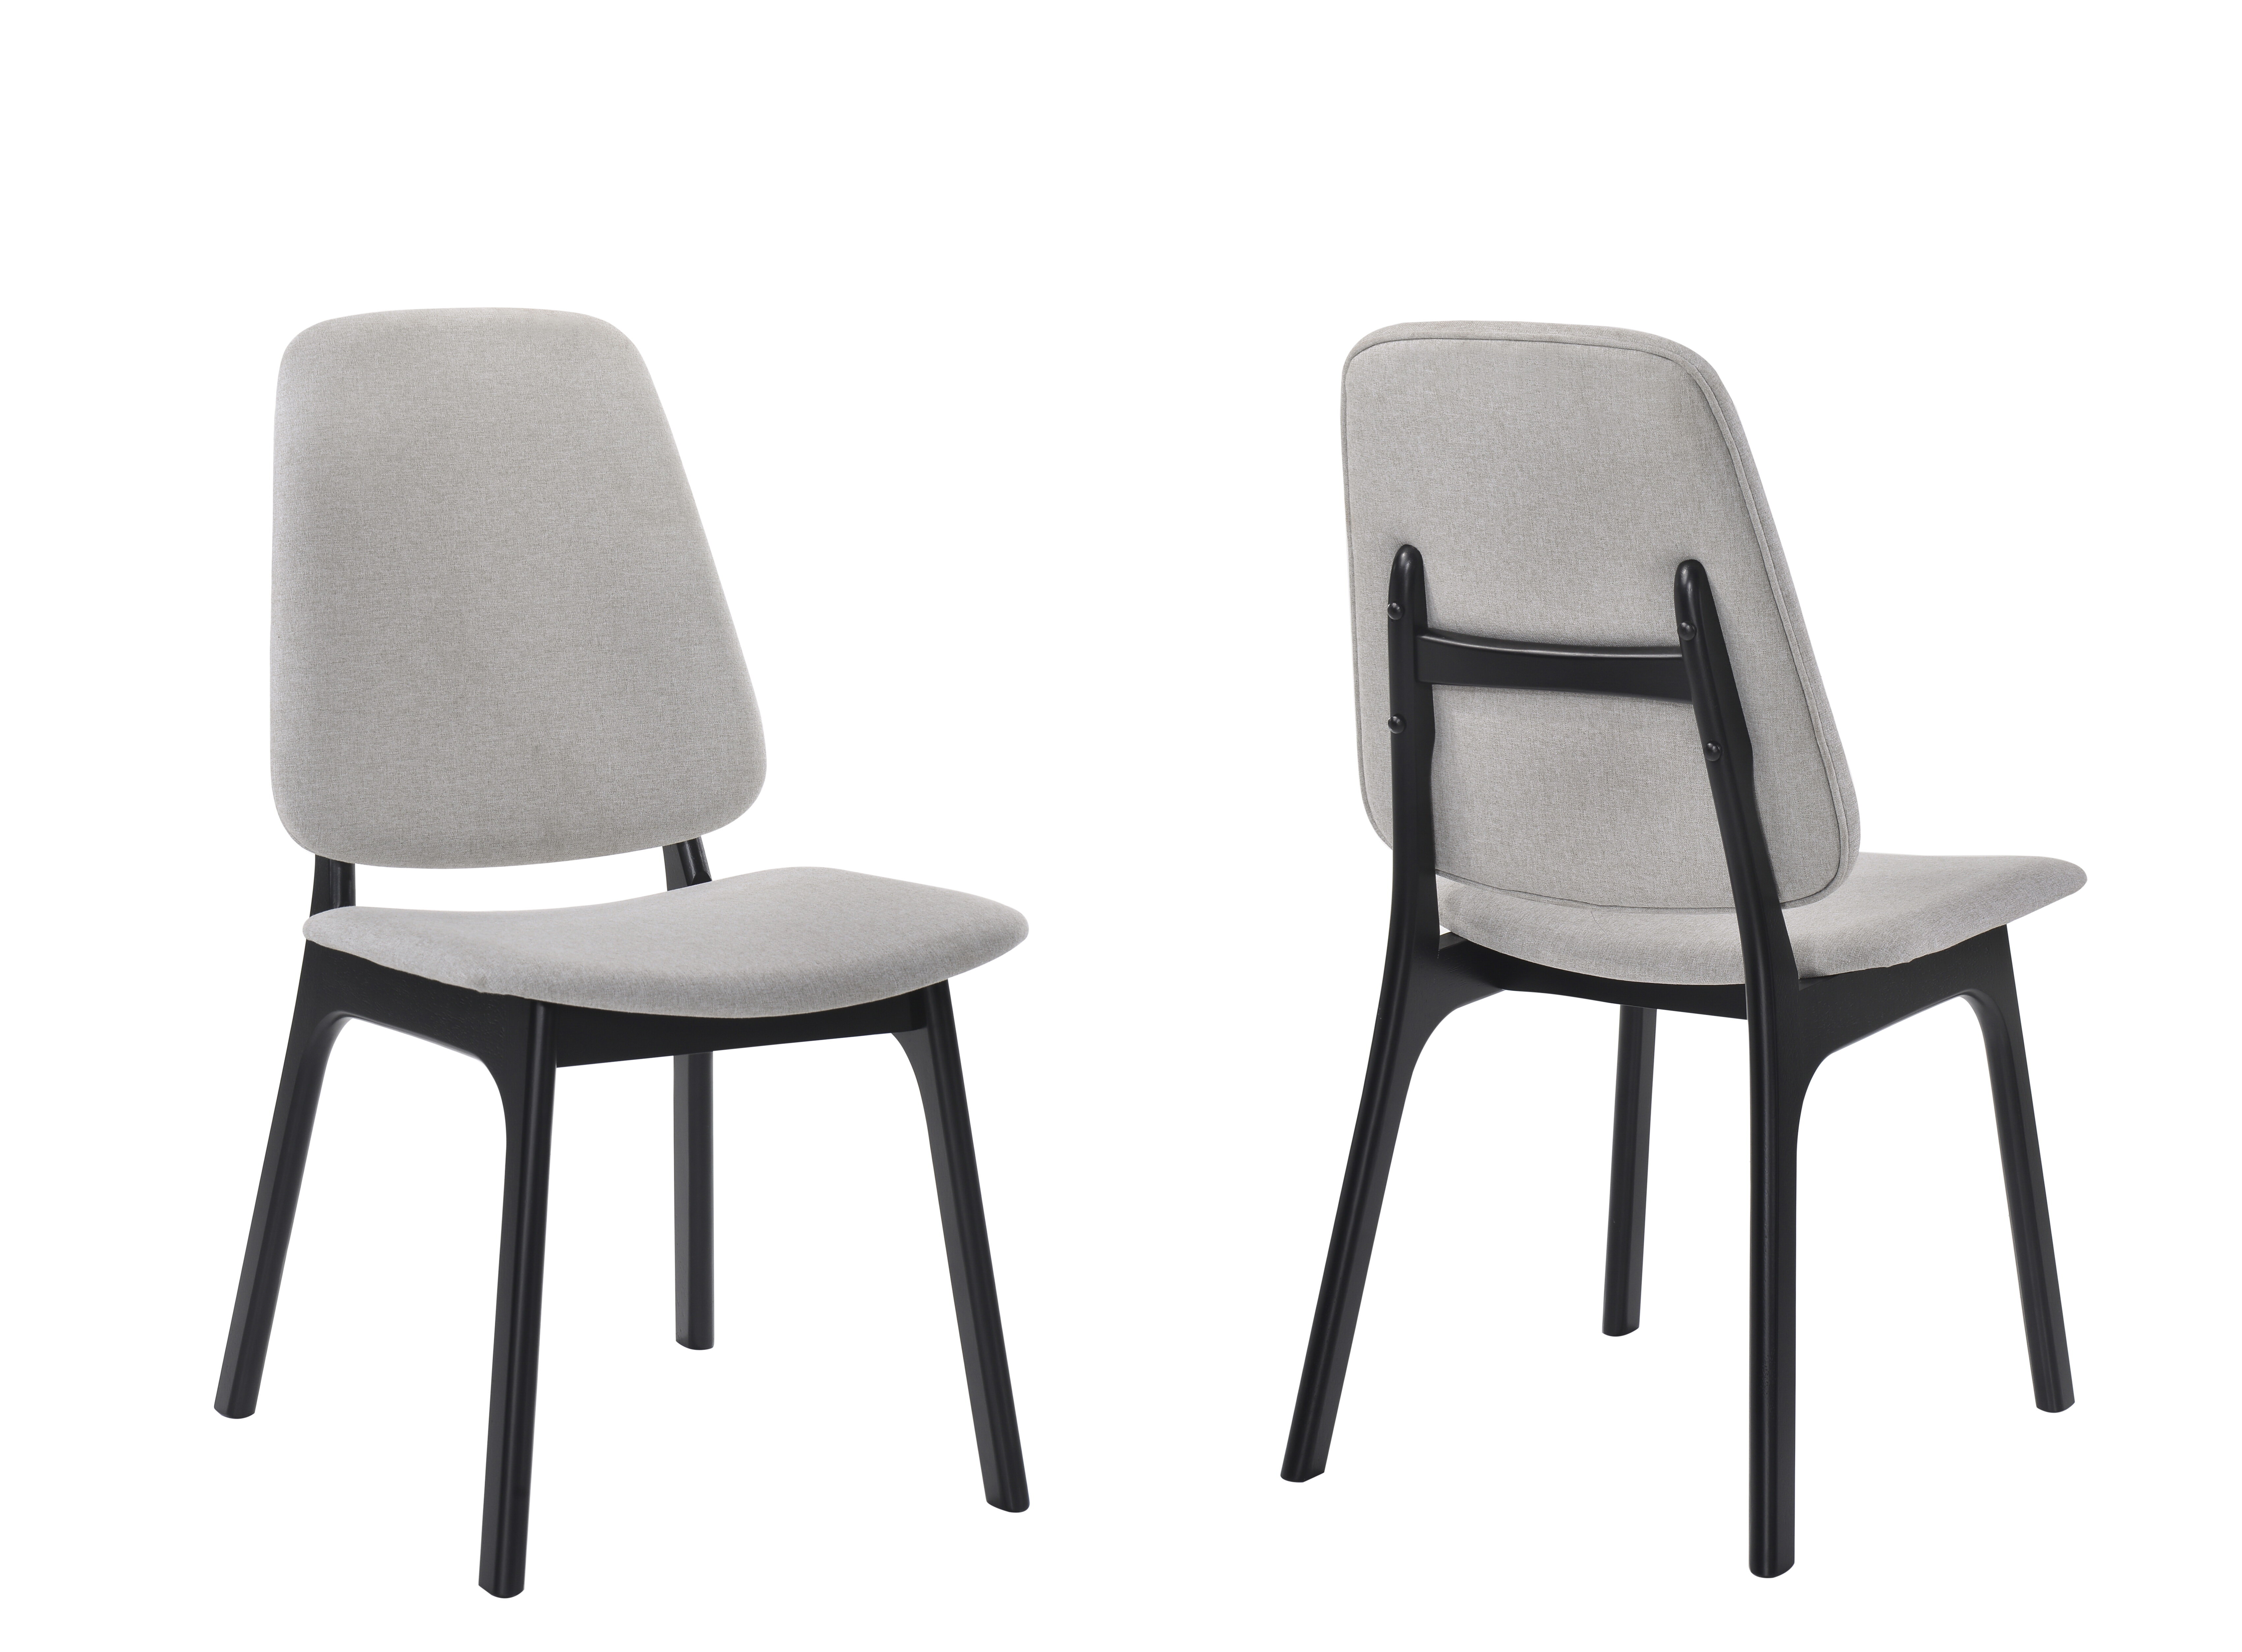 Brilliant Paityn Modern Upholstered Dining Chair Gmtry Best Dining Table And Chair Ideas Images Gmtryco